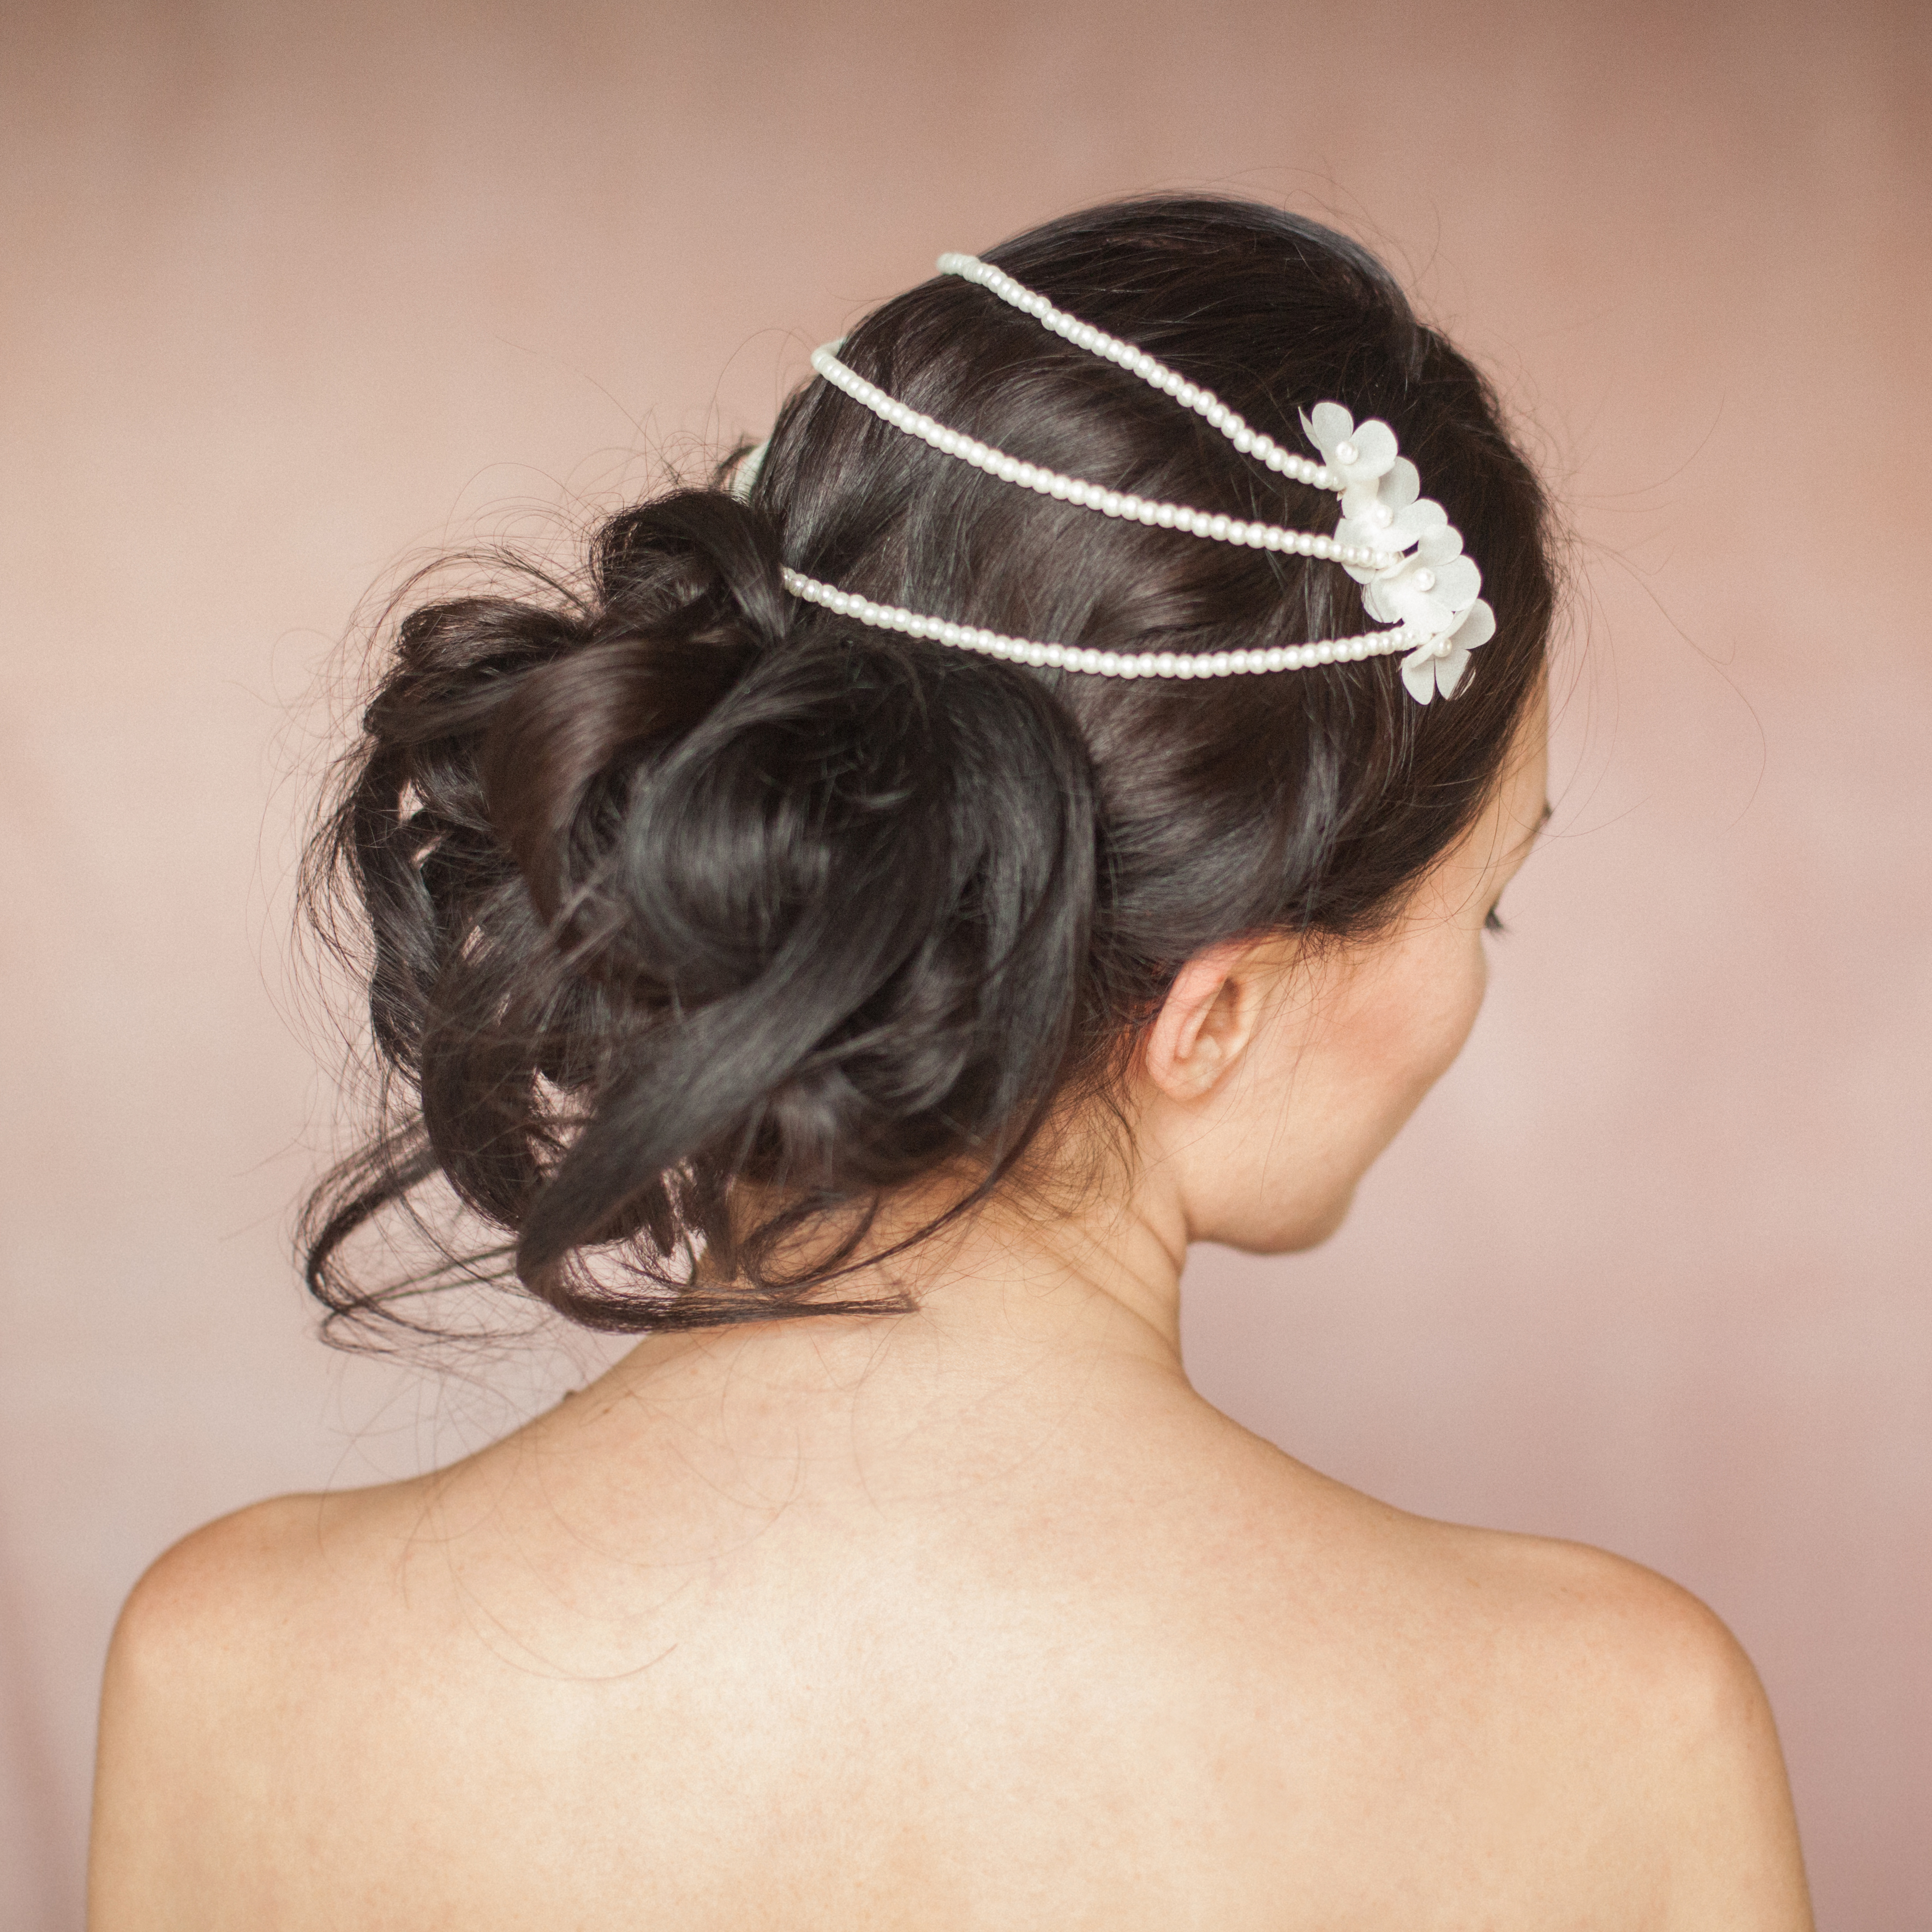 talie-wedding-bridal-silk-flower-haircombs-with-pearl-chains-by-britten